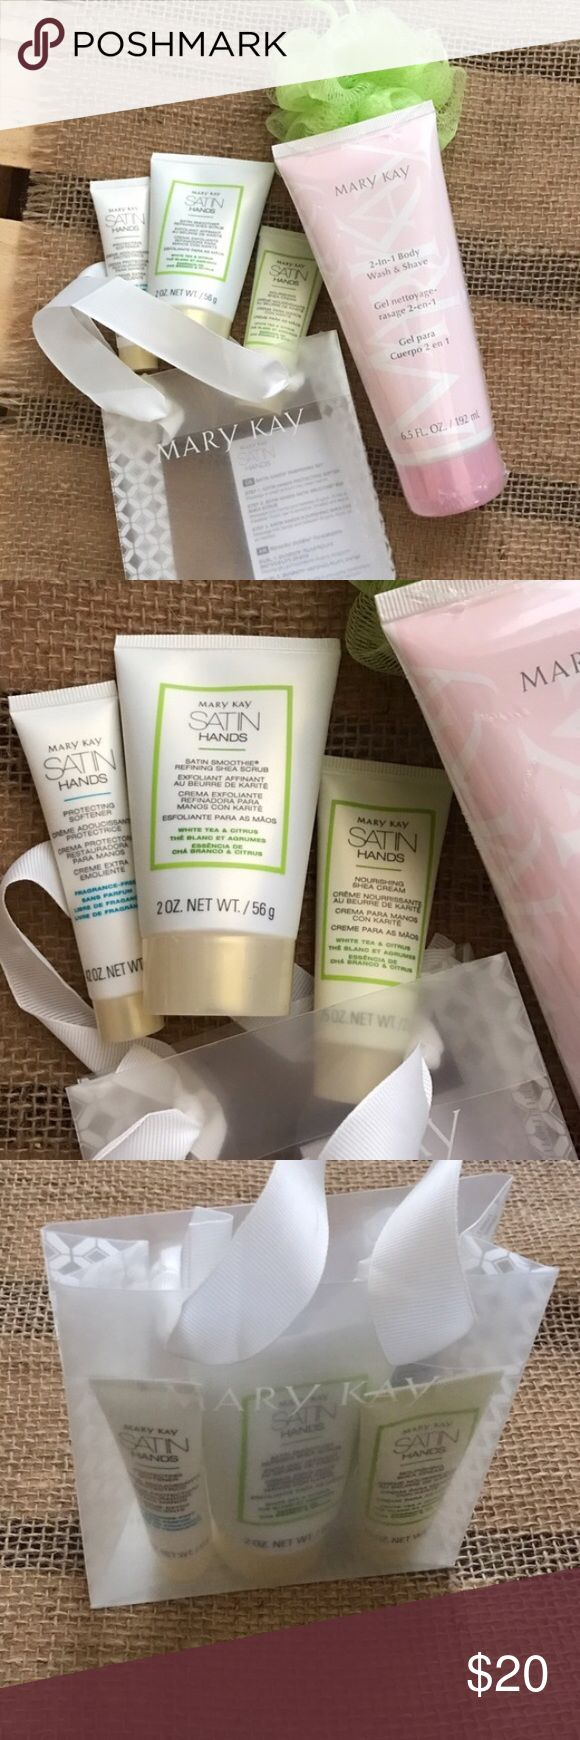 Mary Kay Satin Hands + 3-in-1 Body Wash Bundle Full size 3-in-1 Body Wash / Shave Gel + Free Bath Sponge. Mary Kay Mini Deluxe Satin Hands Set with bag. ❌Not for individual sale. NO trades. Price is firm unless bundled. Mary Kay Makeup